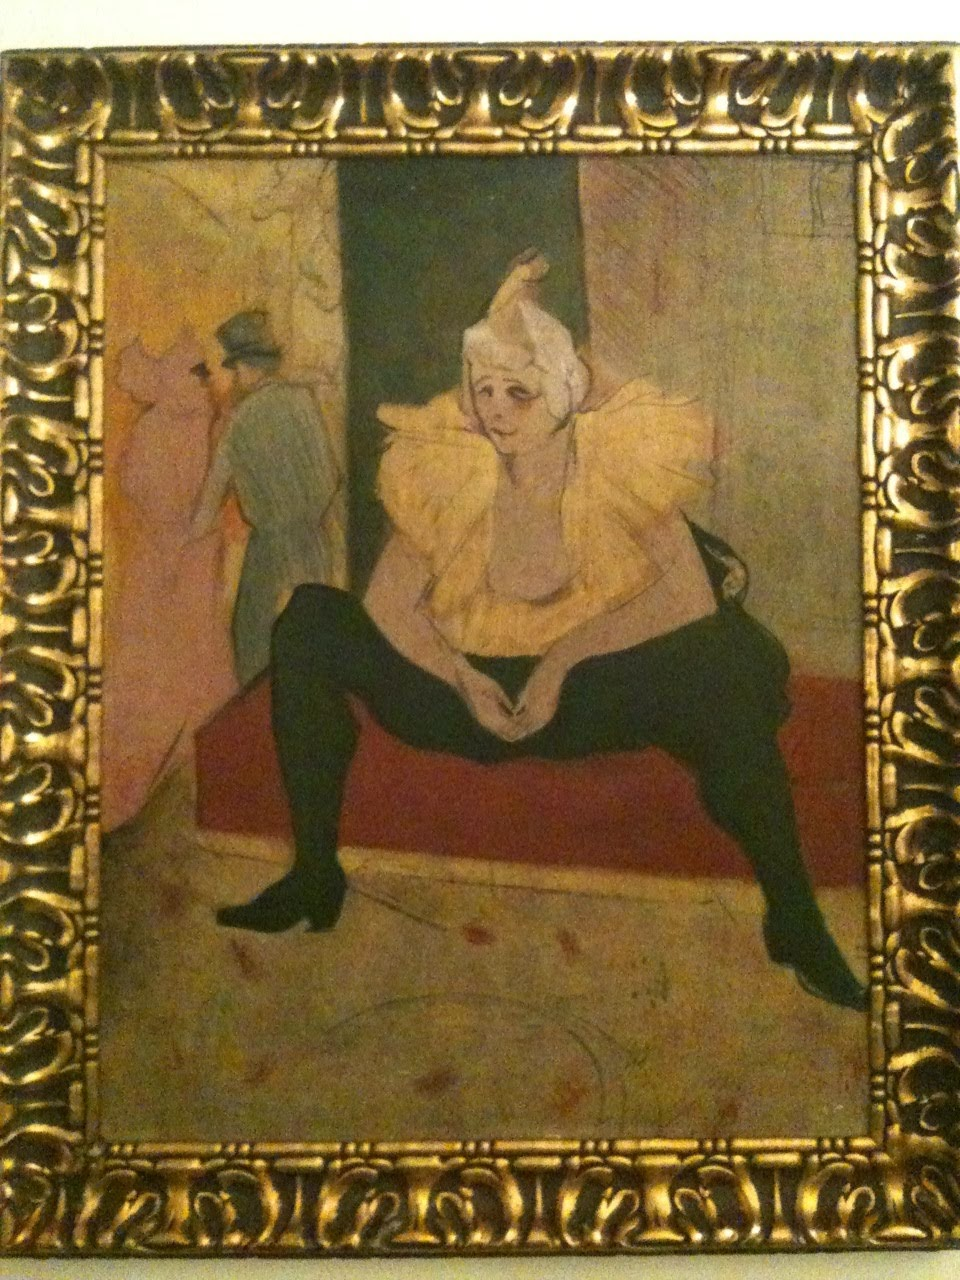 Toulouse Lautrec discovered